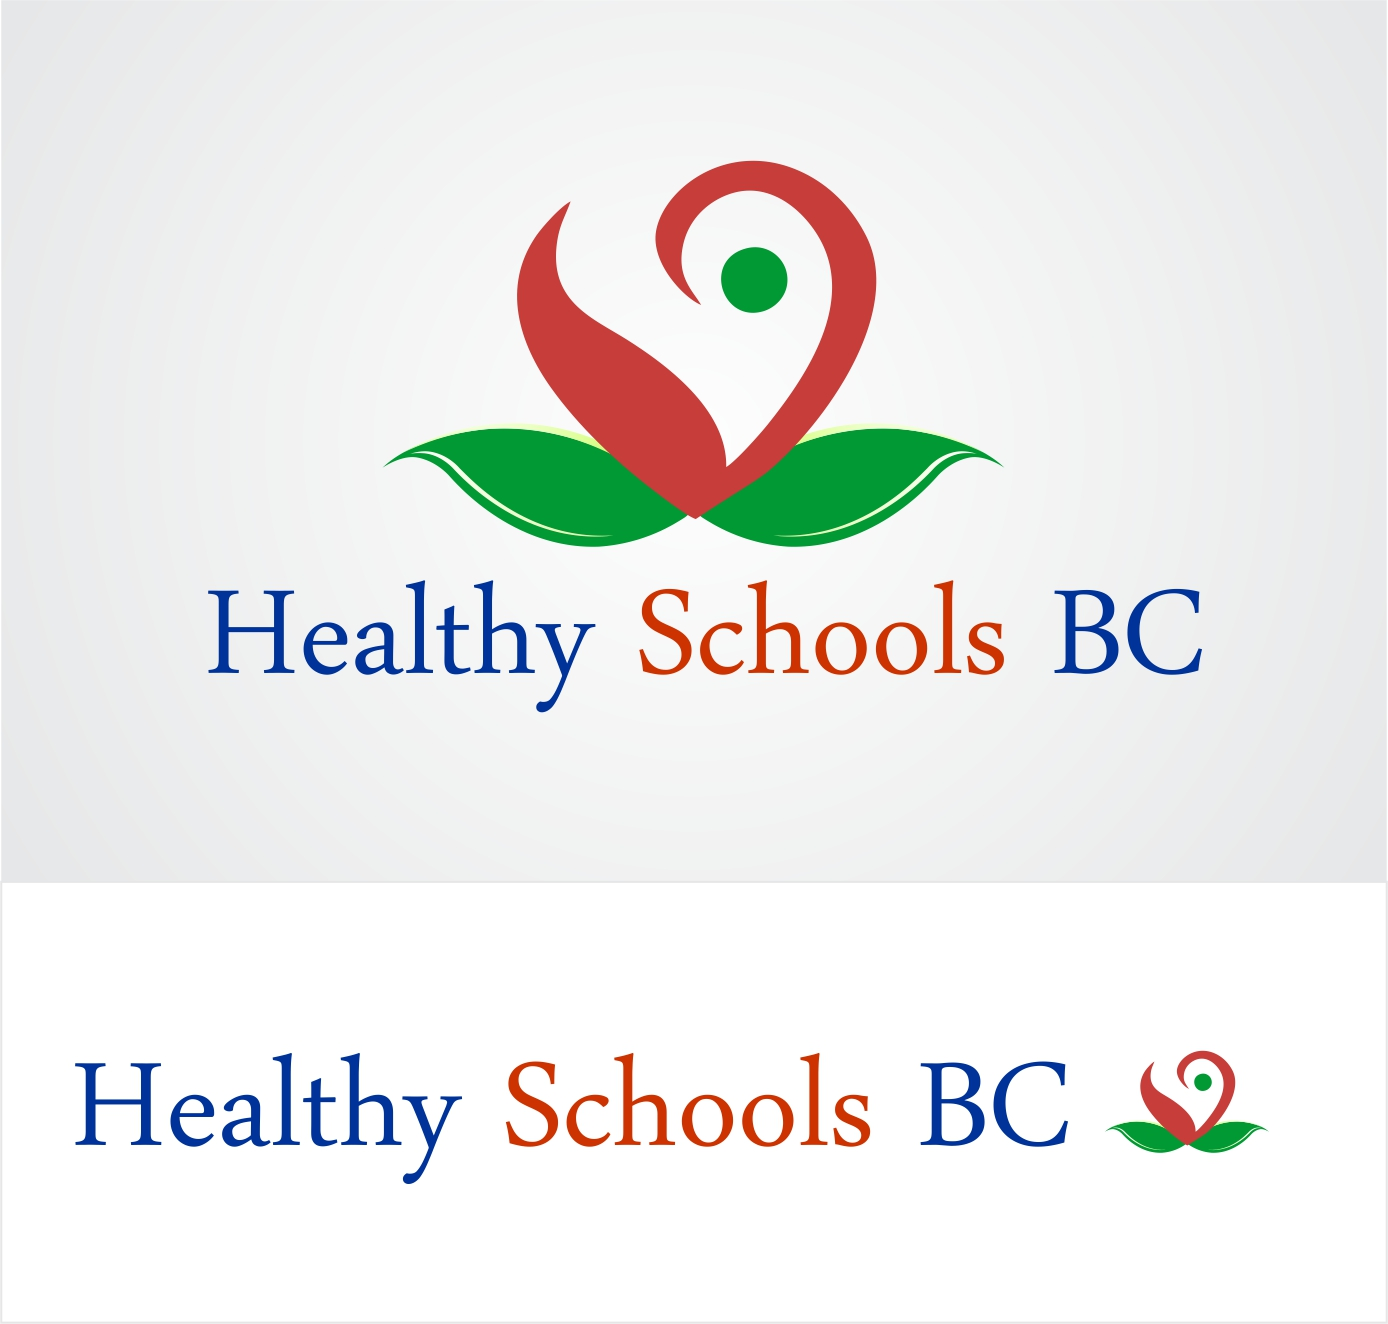 Logo Design by Hudy Wake - Entry No. 207 in the Logo Design Contest SImple, Creative and Clean Logo Design for Healthy Schools British Columbia, Canada.